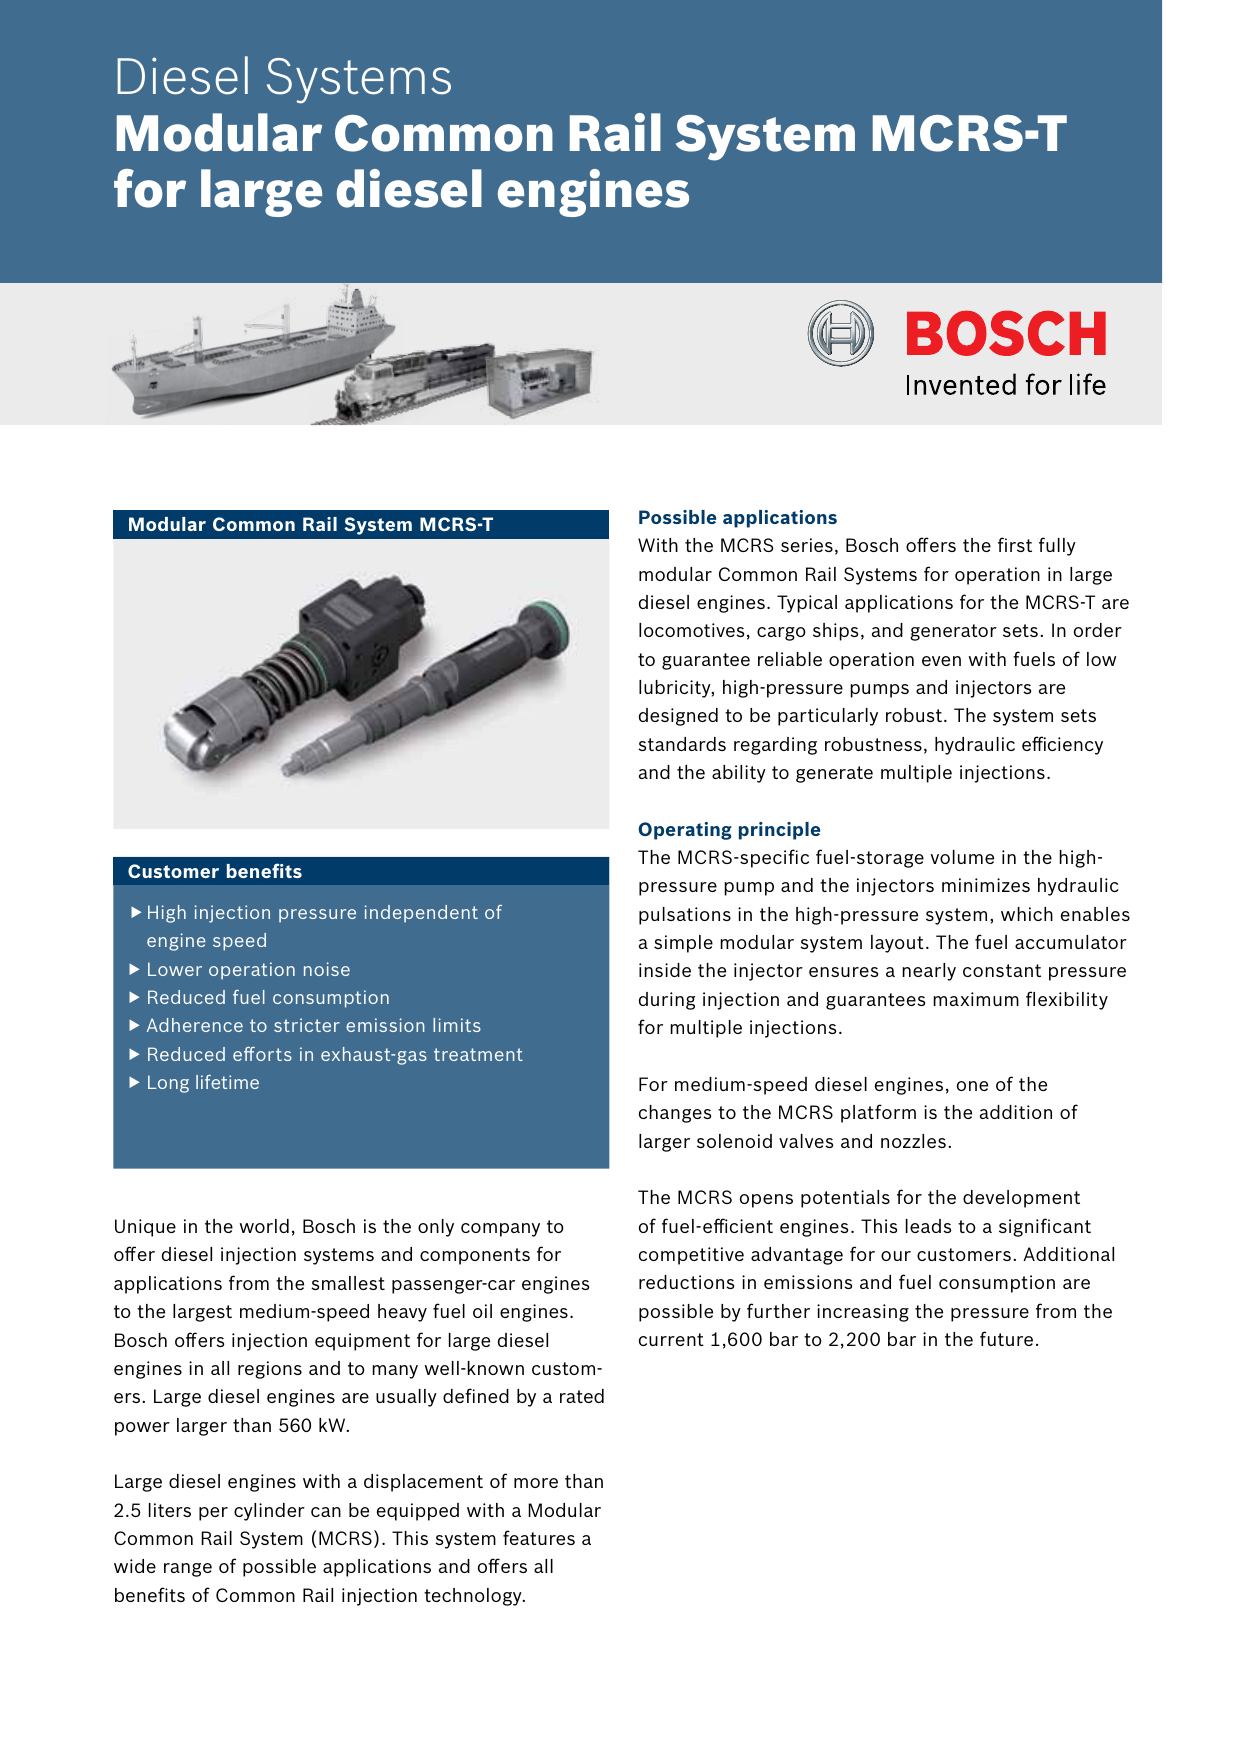 MCRS-T - Bosch Mobility Solutions